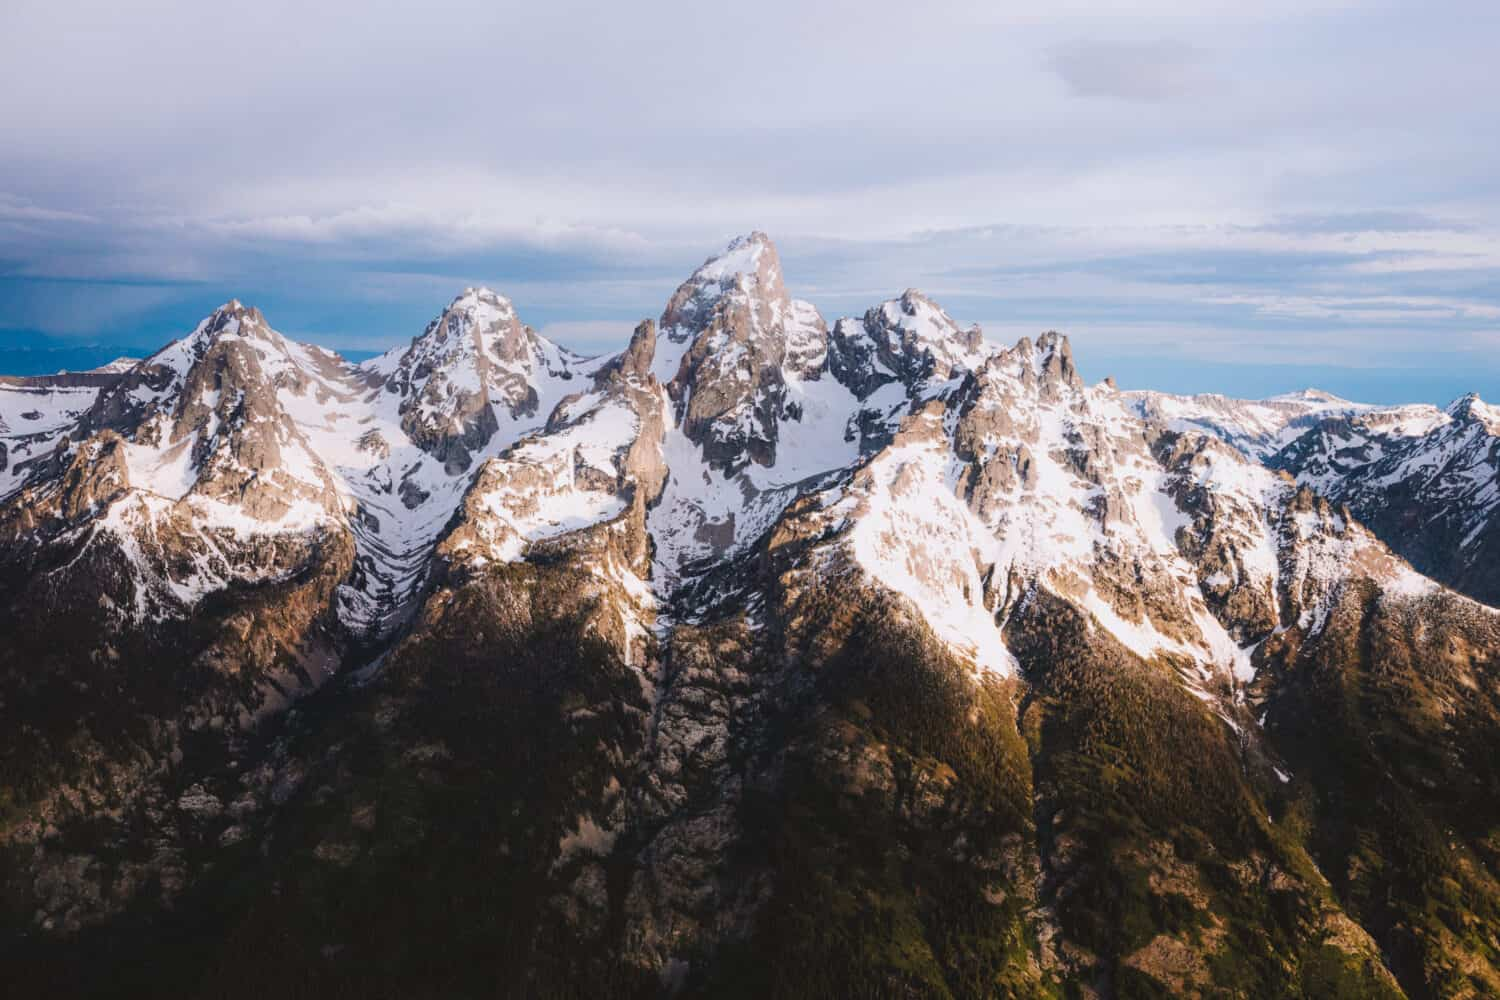 Aerial Photography of Grand Teton National Park by The Mandagies